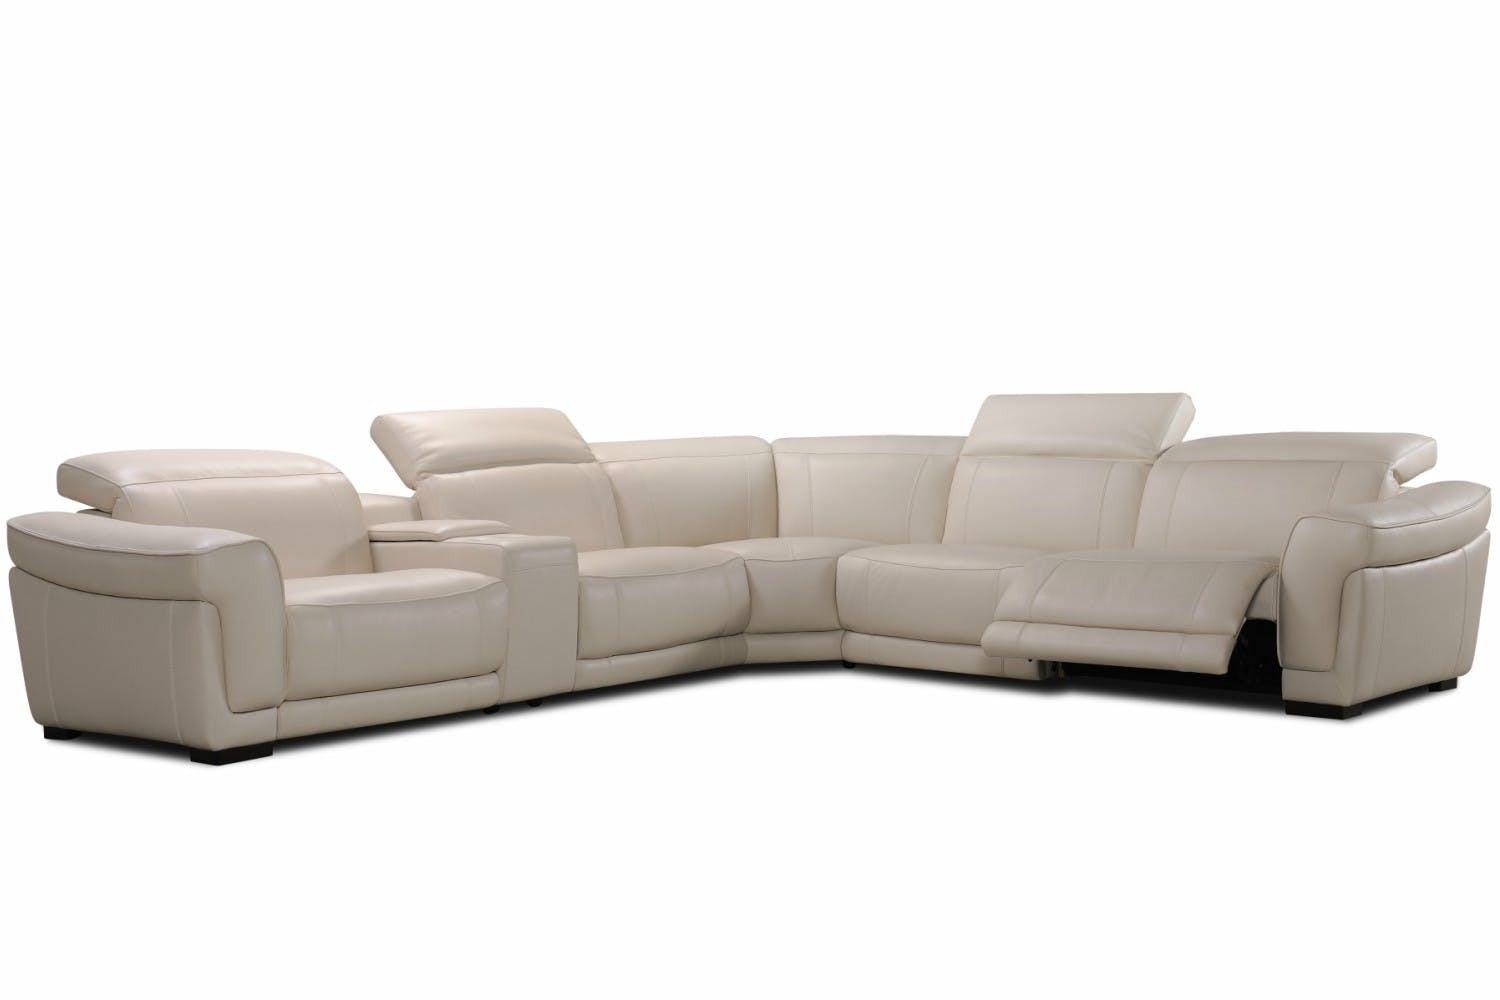 Excellent Sonny Electric Recliner Corner Sofa Download Free Architecture Designs Sospemadebymaigaardcom